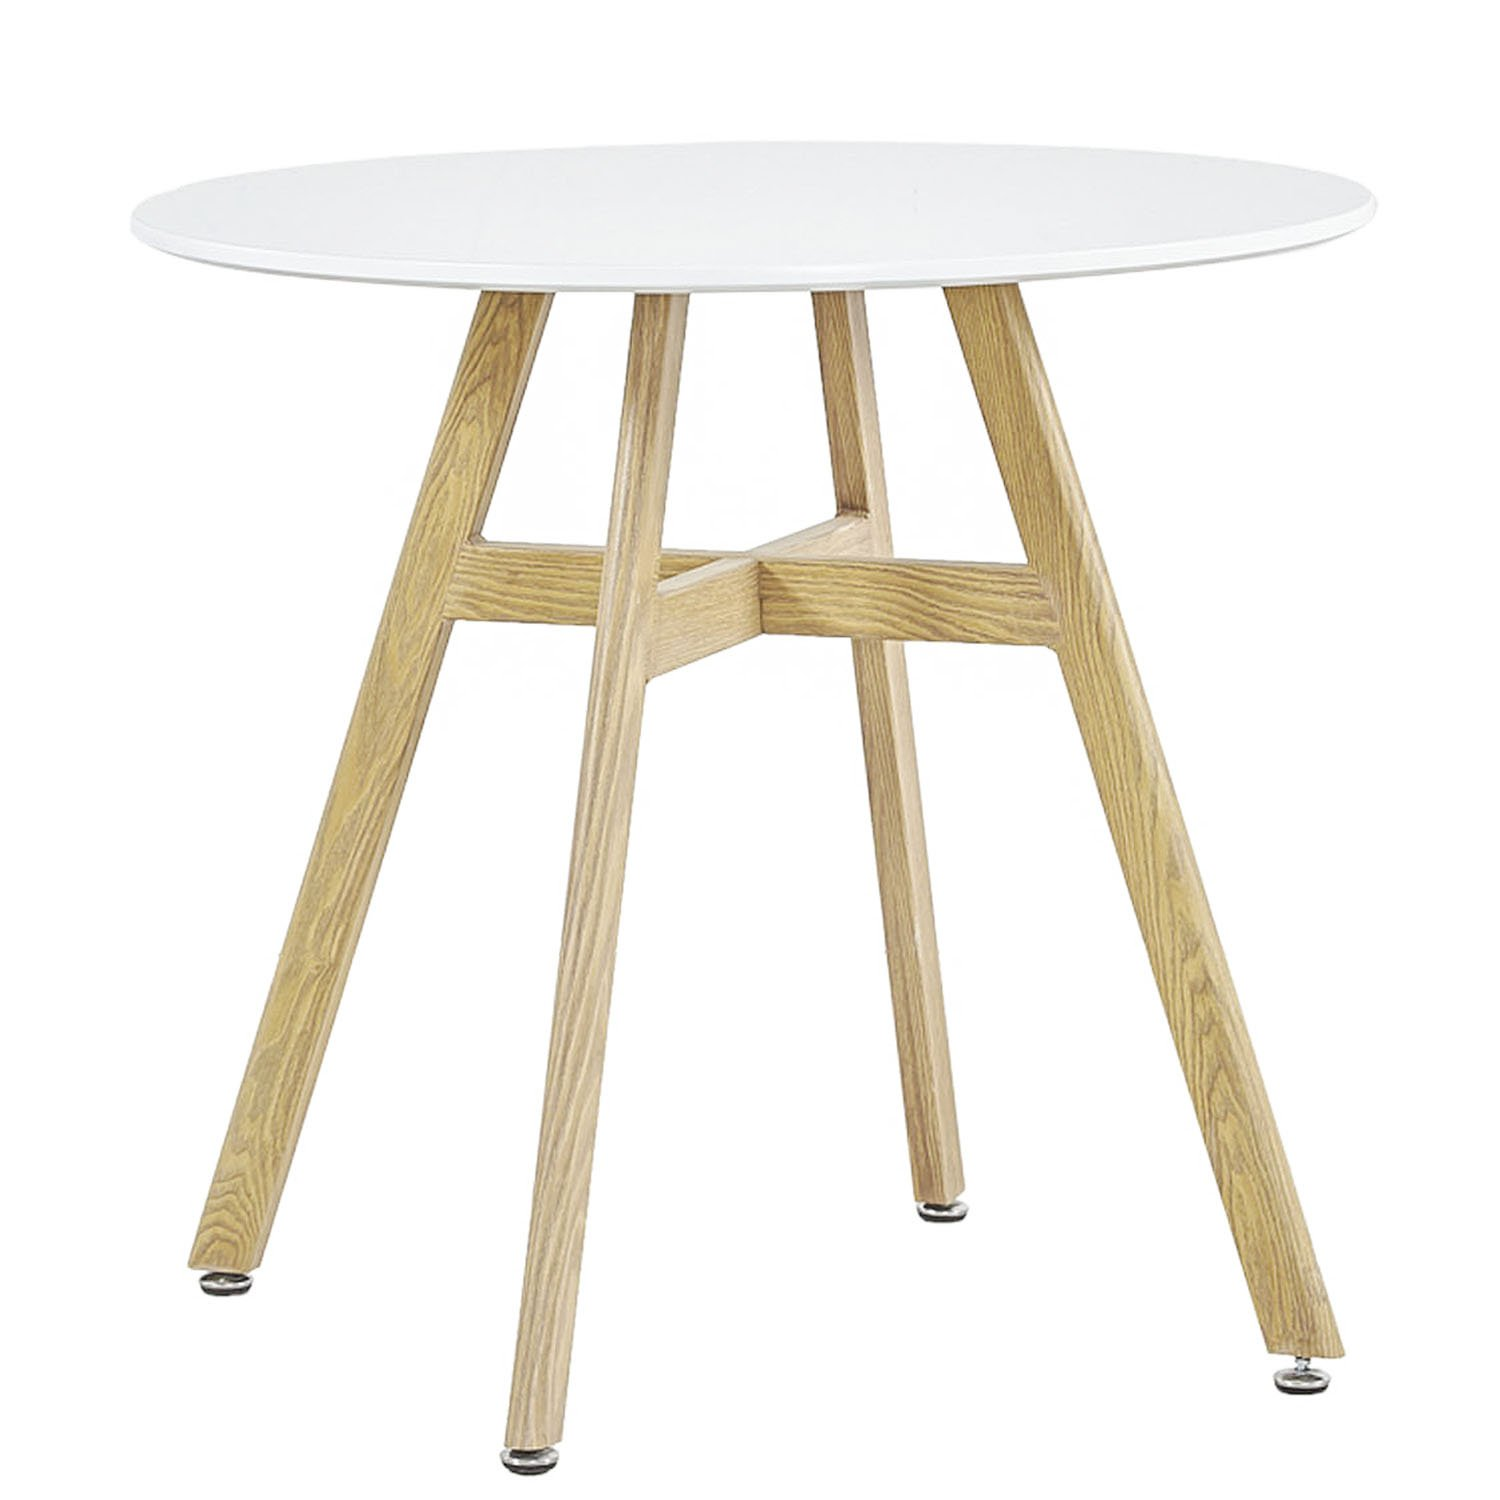 GreenForest Round Dining Table with 32'' White Wooden Table Top and Sturdy Wooden Paint Metal Legs, Kicthen Room Pedestal Leisure Coffee Tea Table